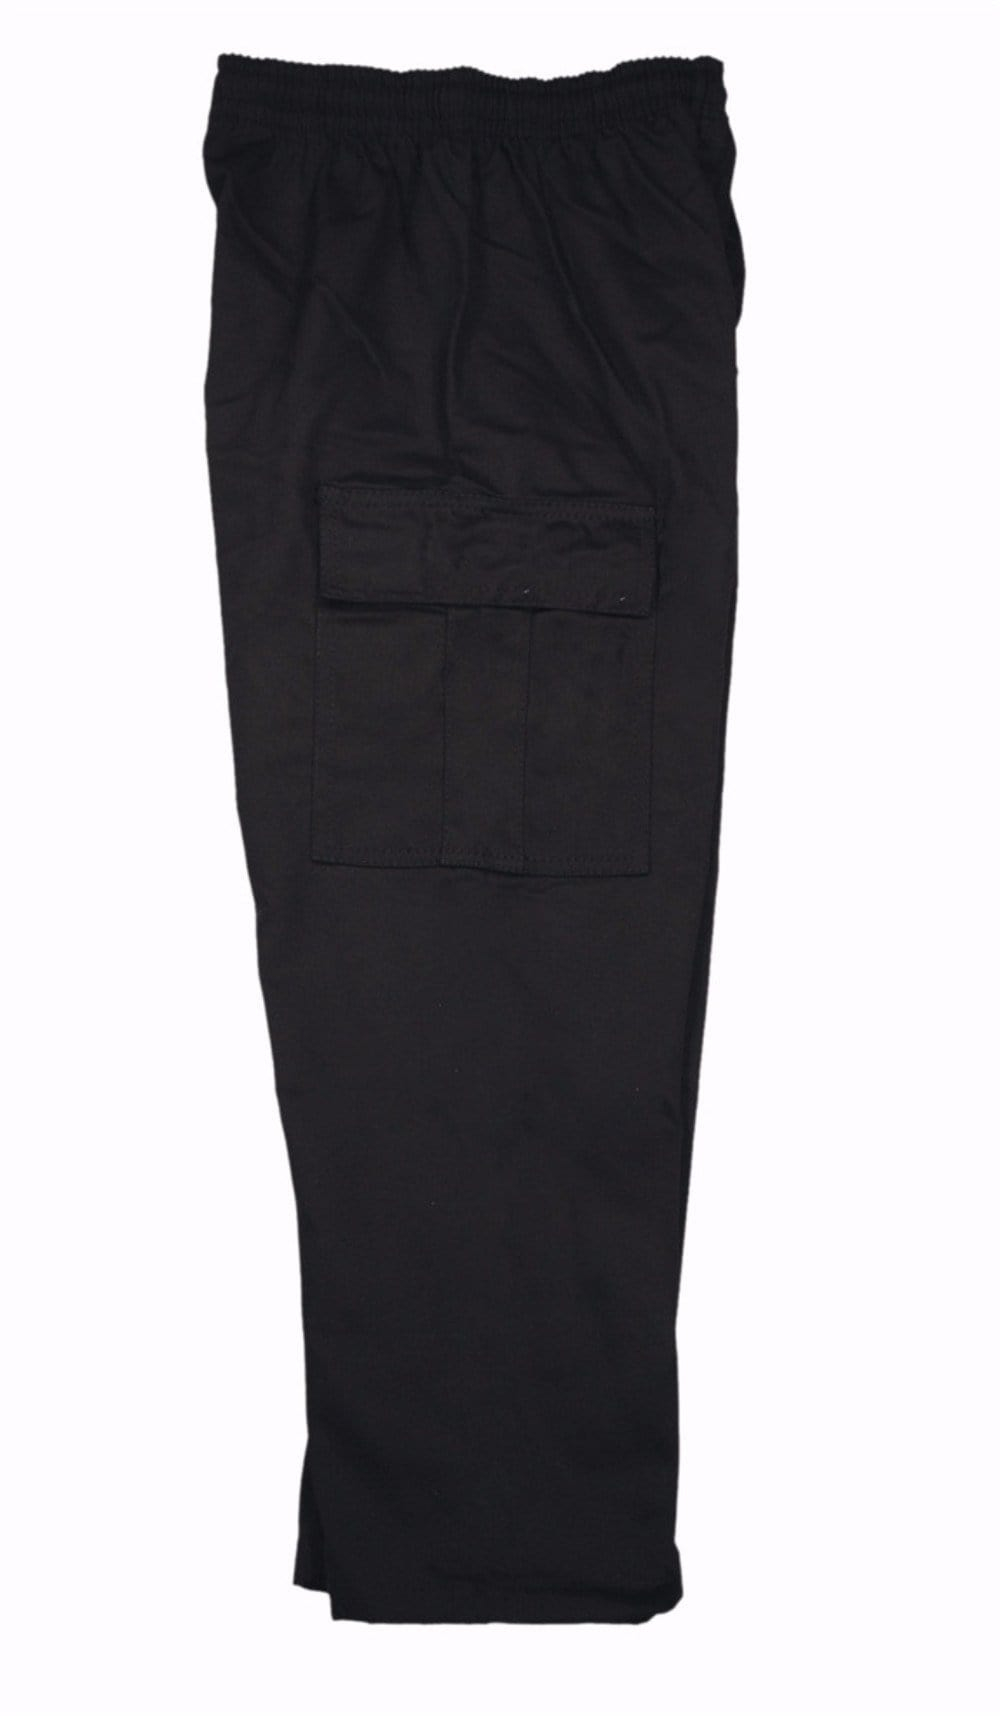 7 oz Black Middleweight Cargo Pants  by Bold - BlackBeltShop